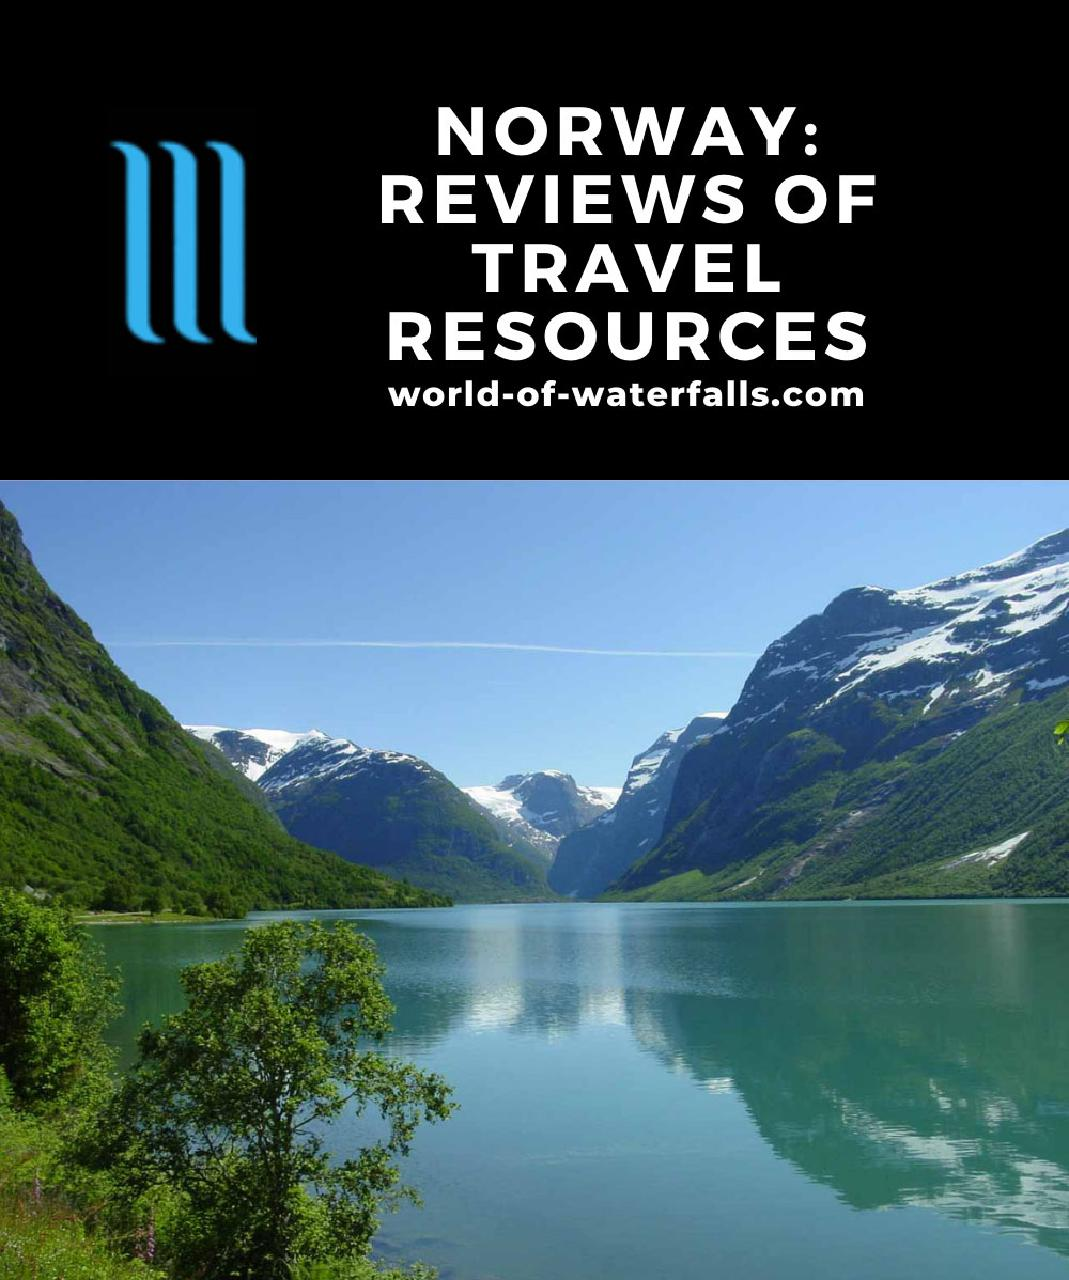 Norway: Reviews of Travel Resources